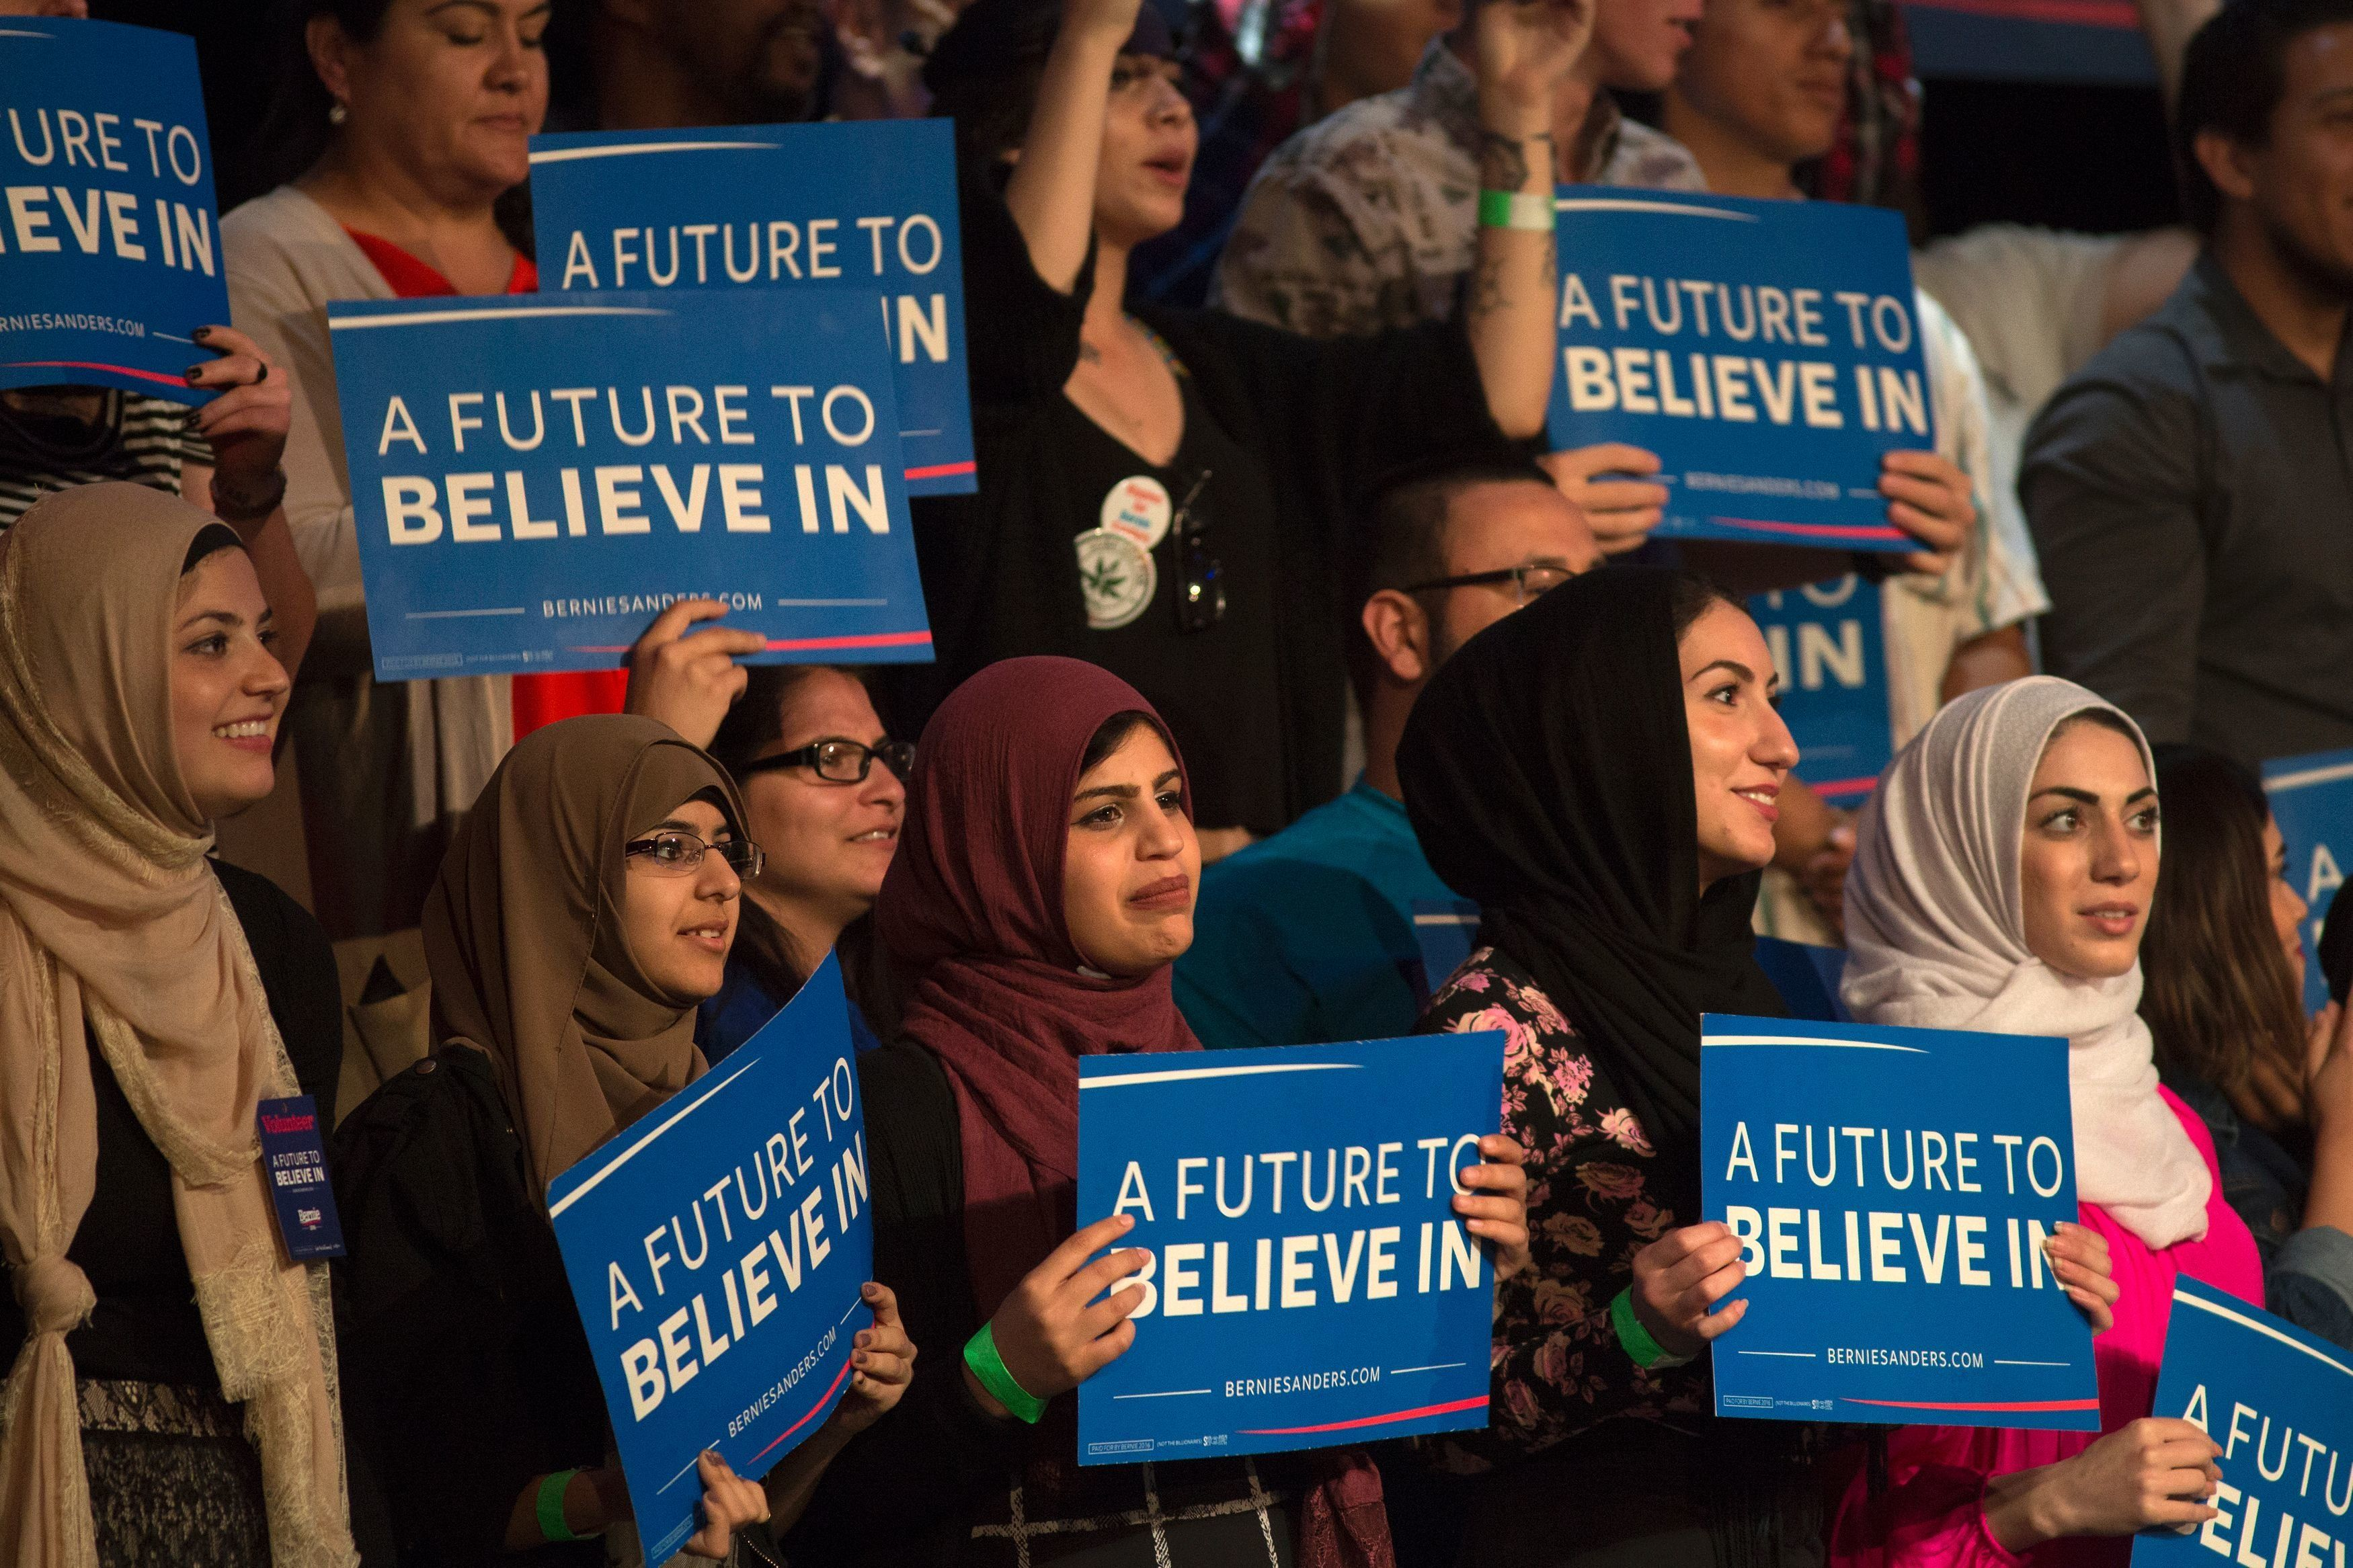 Muslim woman support Democratic presidential candidate Bernie Sanders during his campaign rally at the Riverside Municipal Auditorium on May 24, 2016 in Riverside, California.  US presidential candidates have turned their attention to campaigning in earnest for the June 7th California primary election. / AFP / DAVID MCNEW        (Photo credit should read DAVID MCNEW/AFP/Getty Images)